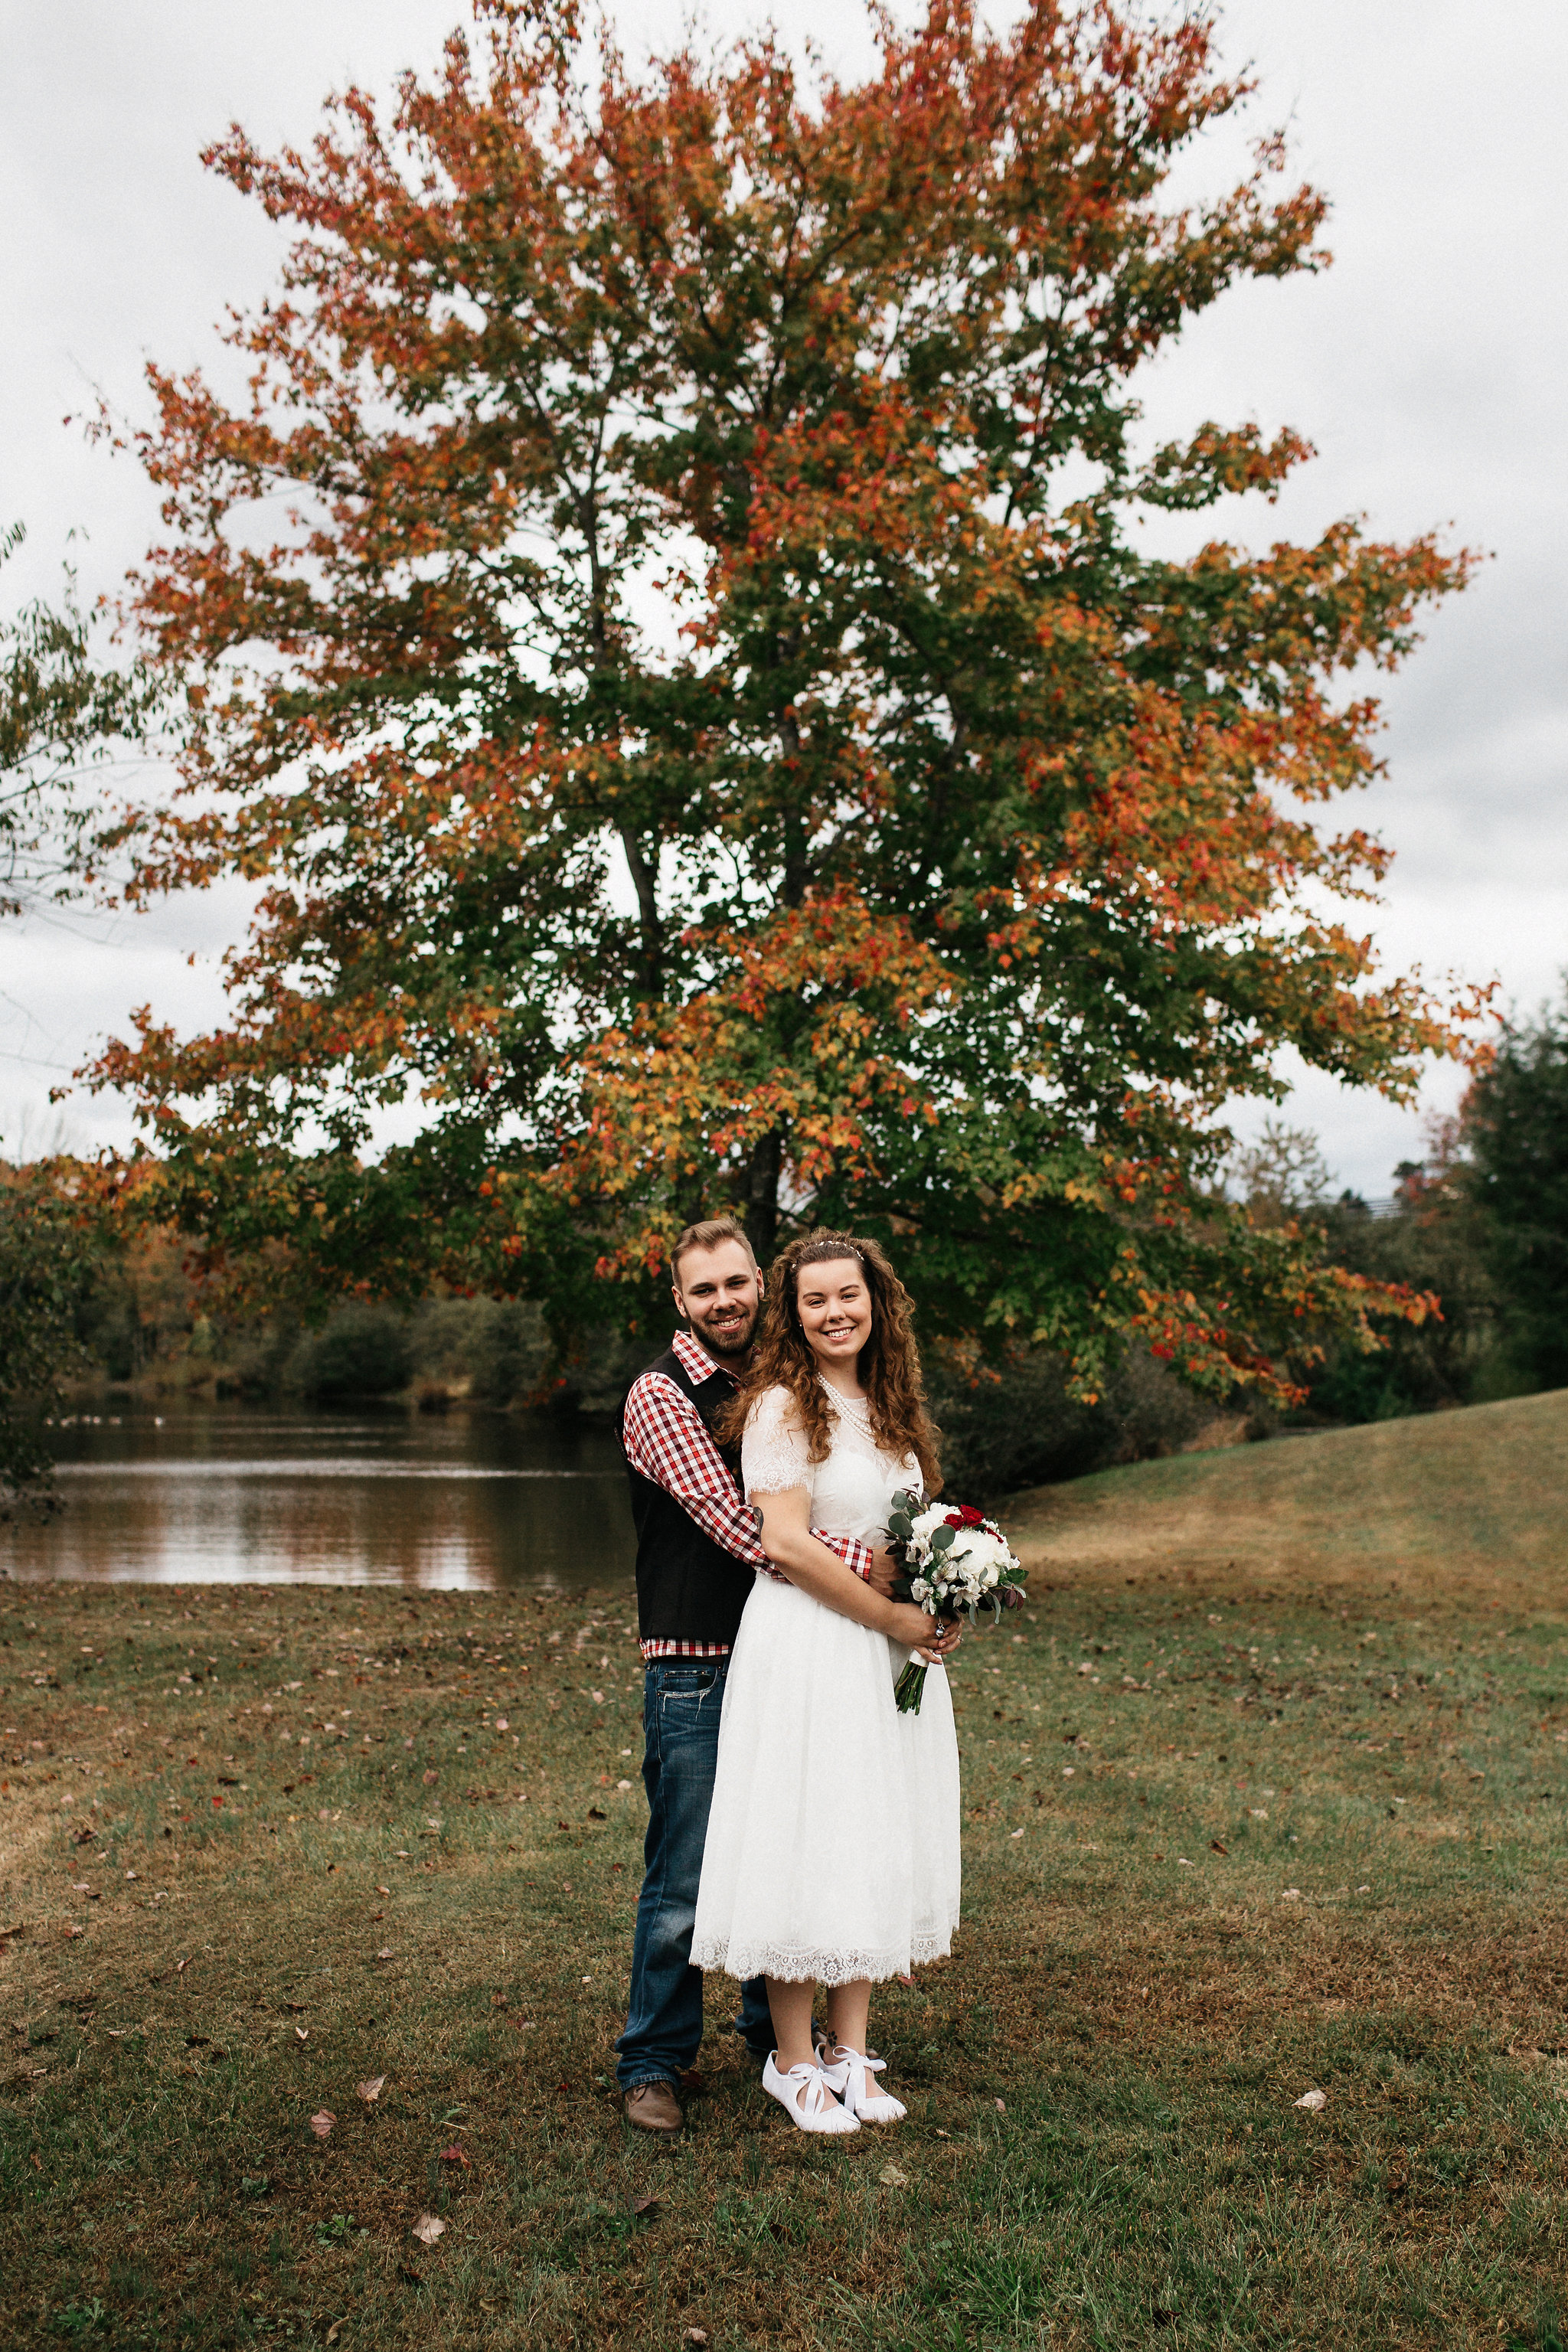 Caitlin&CodyMarried2017-11-03at19.19.39PM156.jpg